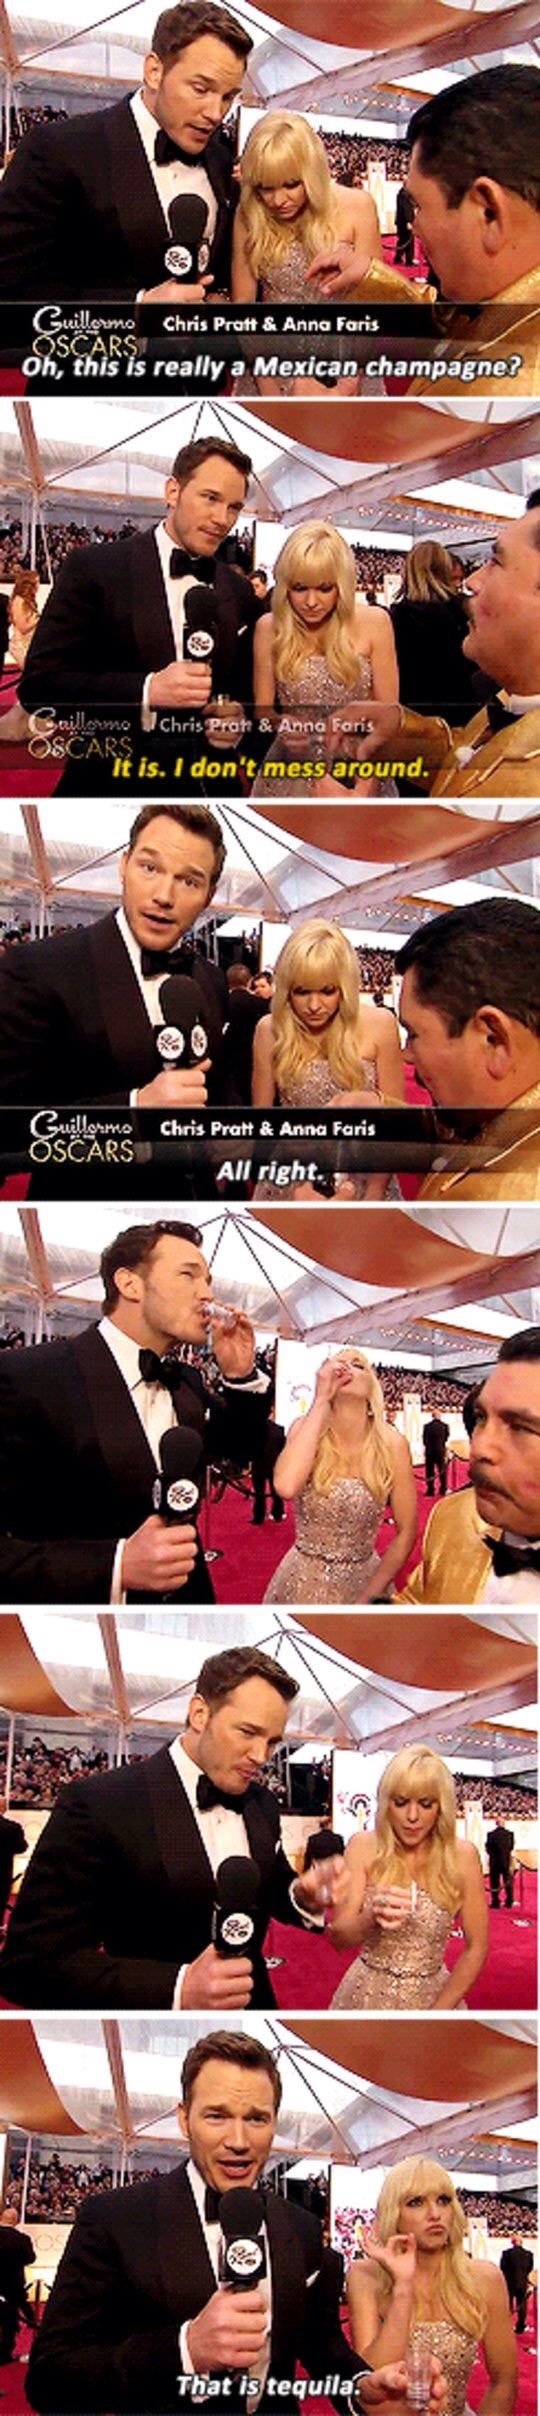 """Mexican. Source: imgur. titl. st. revo Chris Fruit in Anna fad: g suit, Oh, this is really f Me_.![ cag champagne?"""". Well you can't even have mexican champagne. It's just sparkling wine made in champagne in france"""